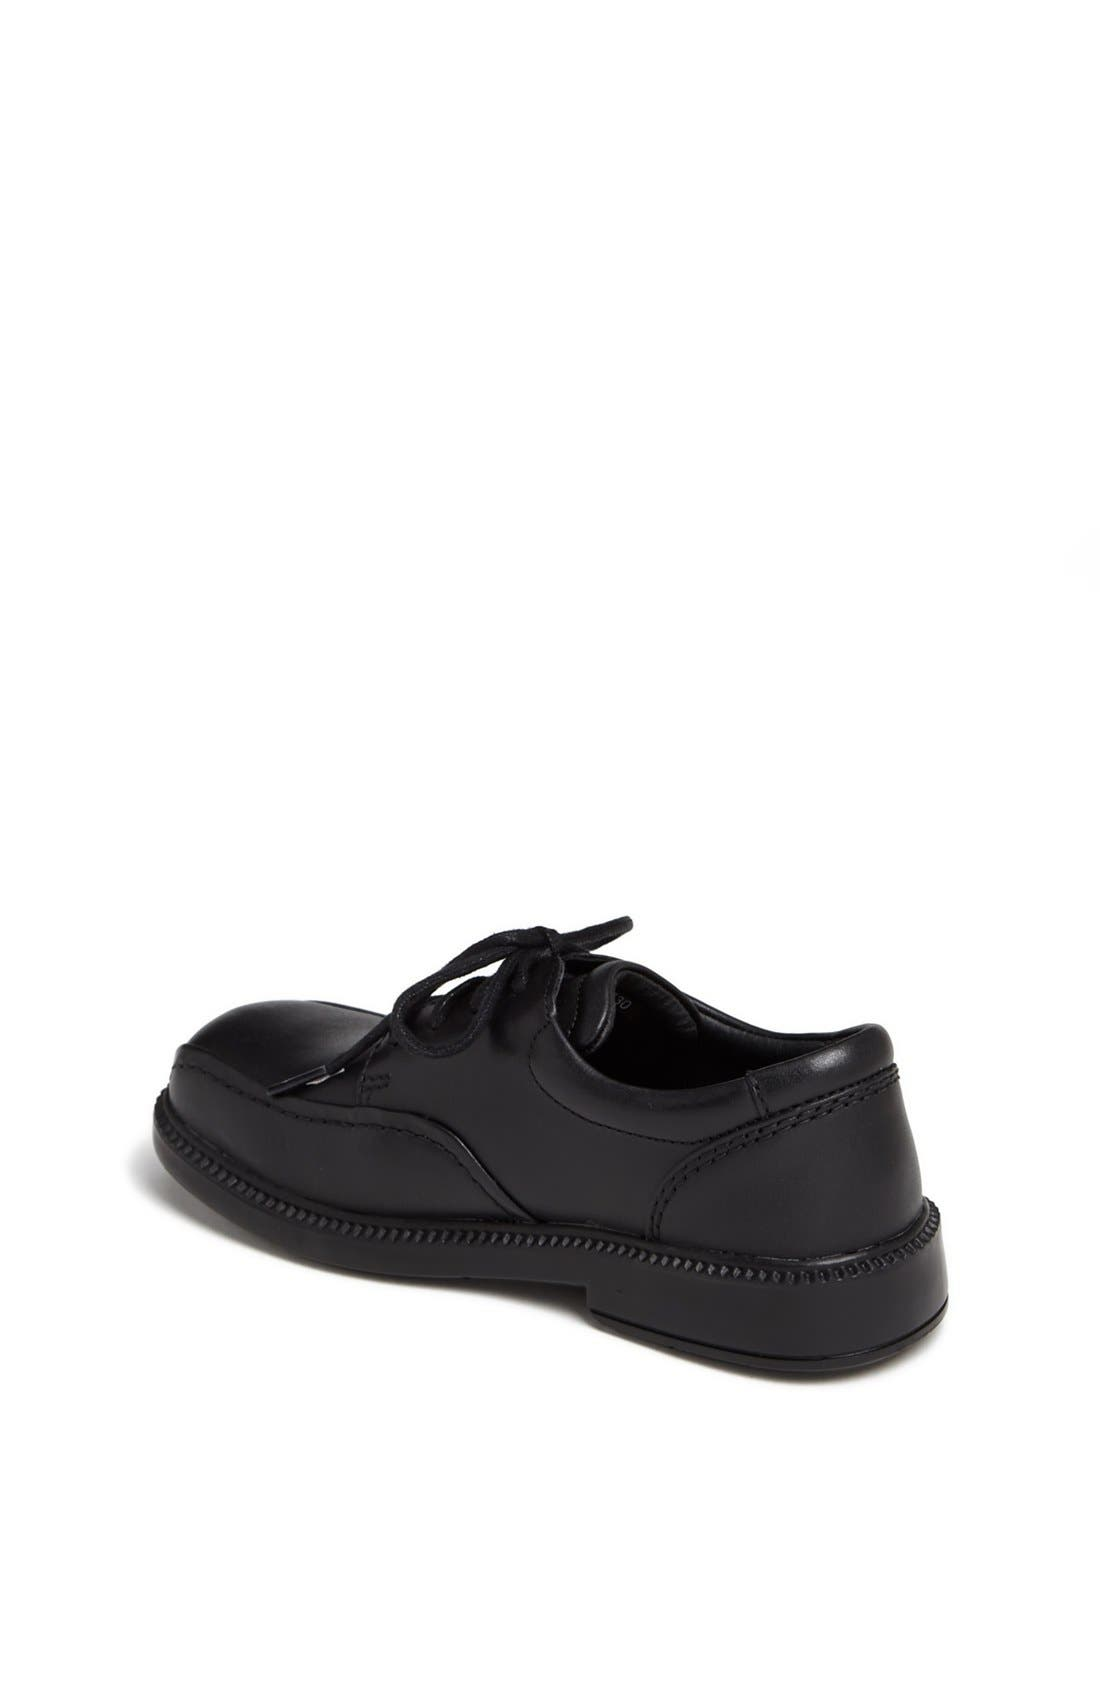 Alternate Image 2  - Umi 'Witton' Dress Shoe (Toddler, Little Kid & Big Kid)